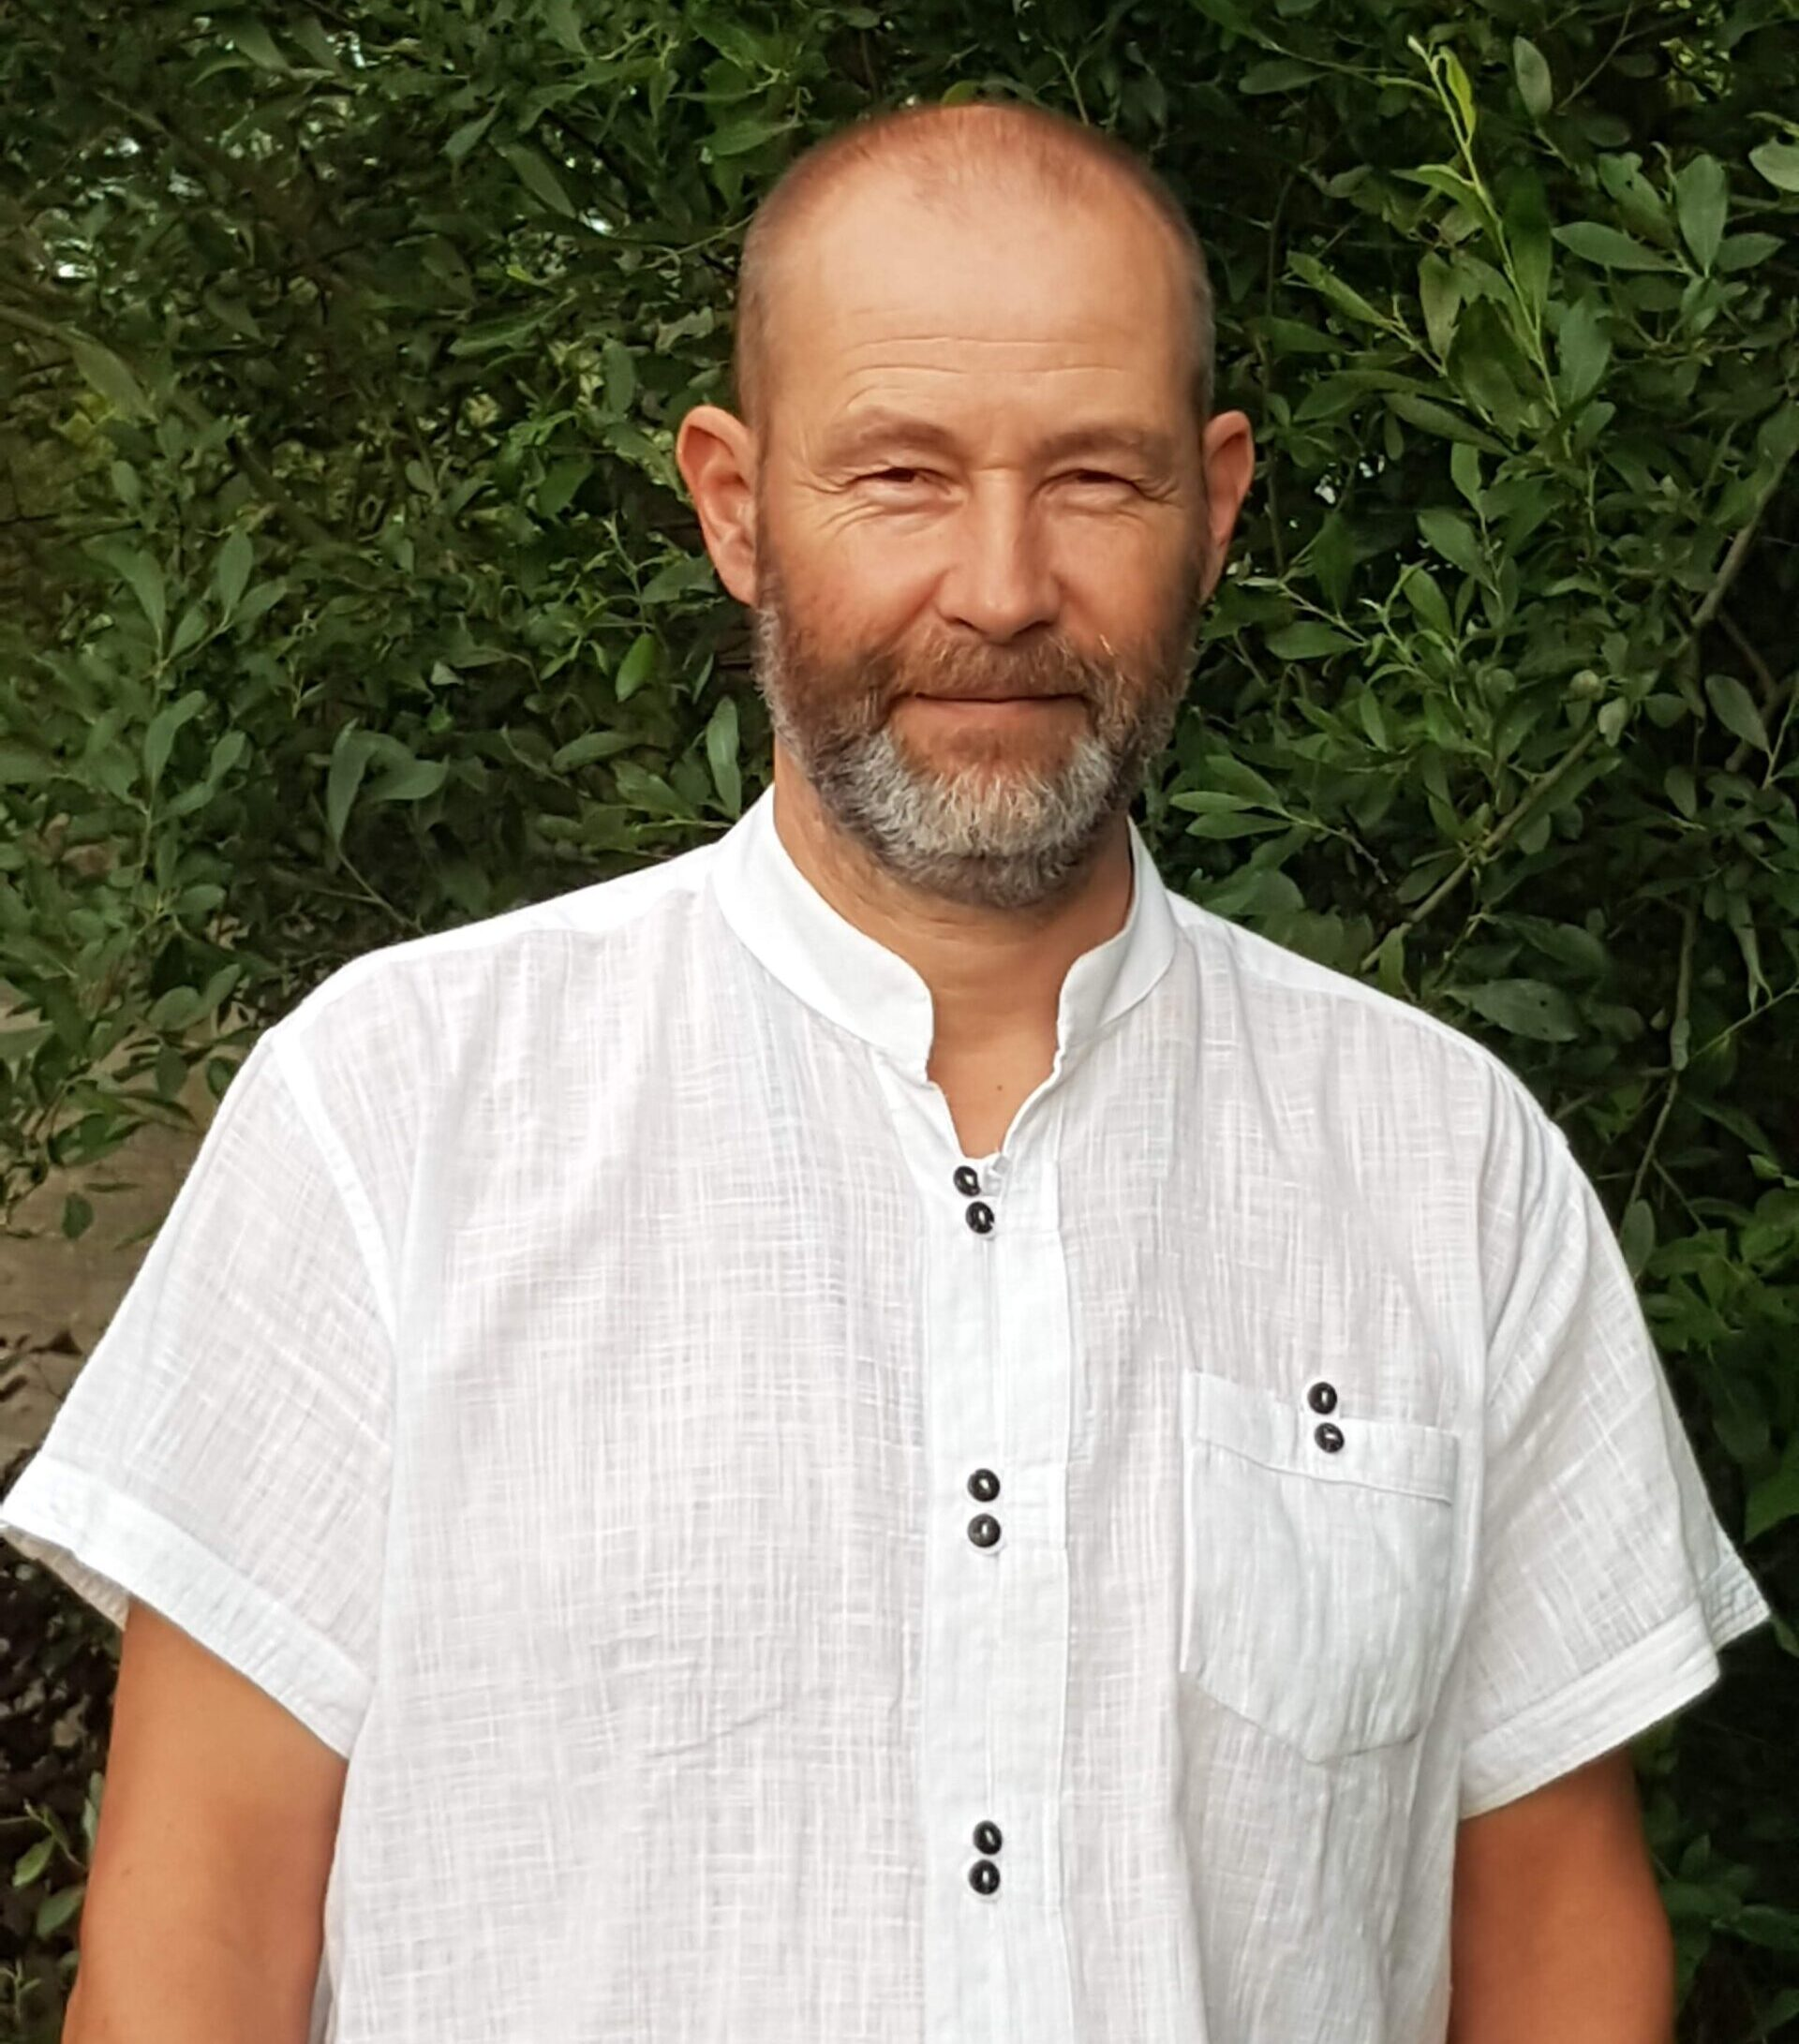 Julian Robus, creator of HOL.<br><br>Happiness & Mental Health Mastery<br>Stress Reduction, Mindful Living<br>and Meditation Instructor.<br>Spititual Teacher